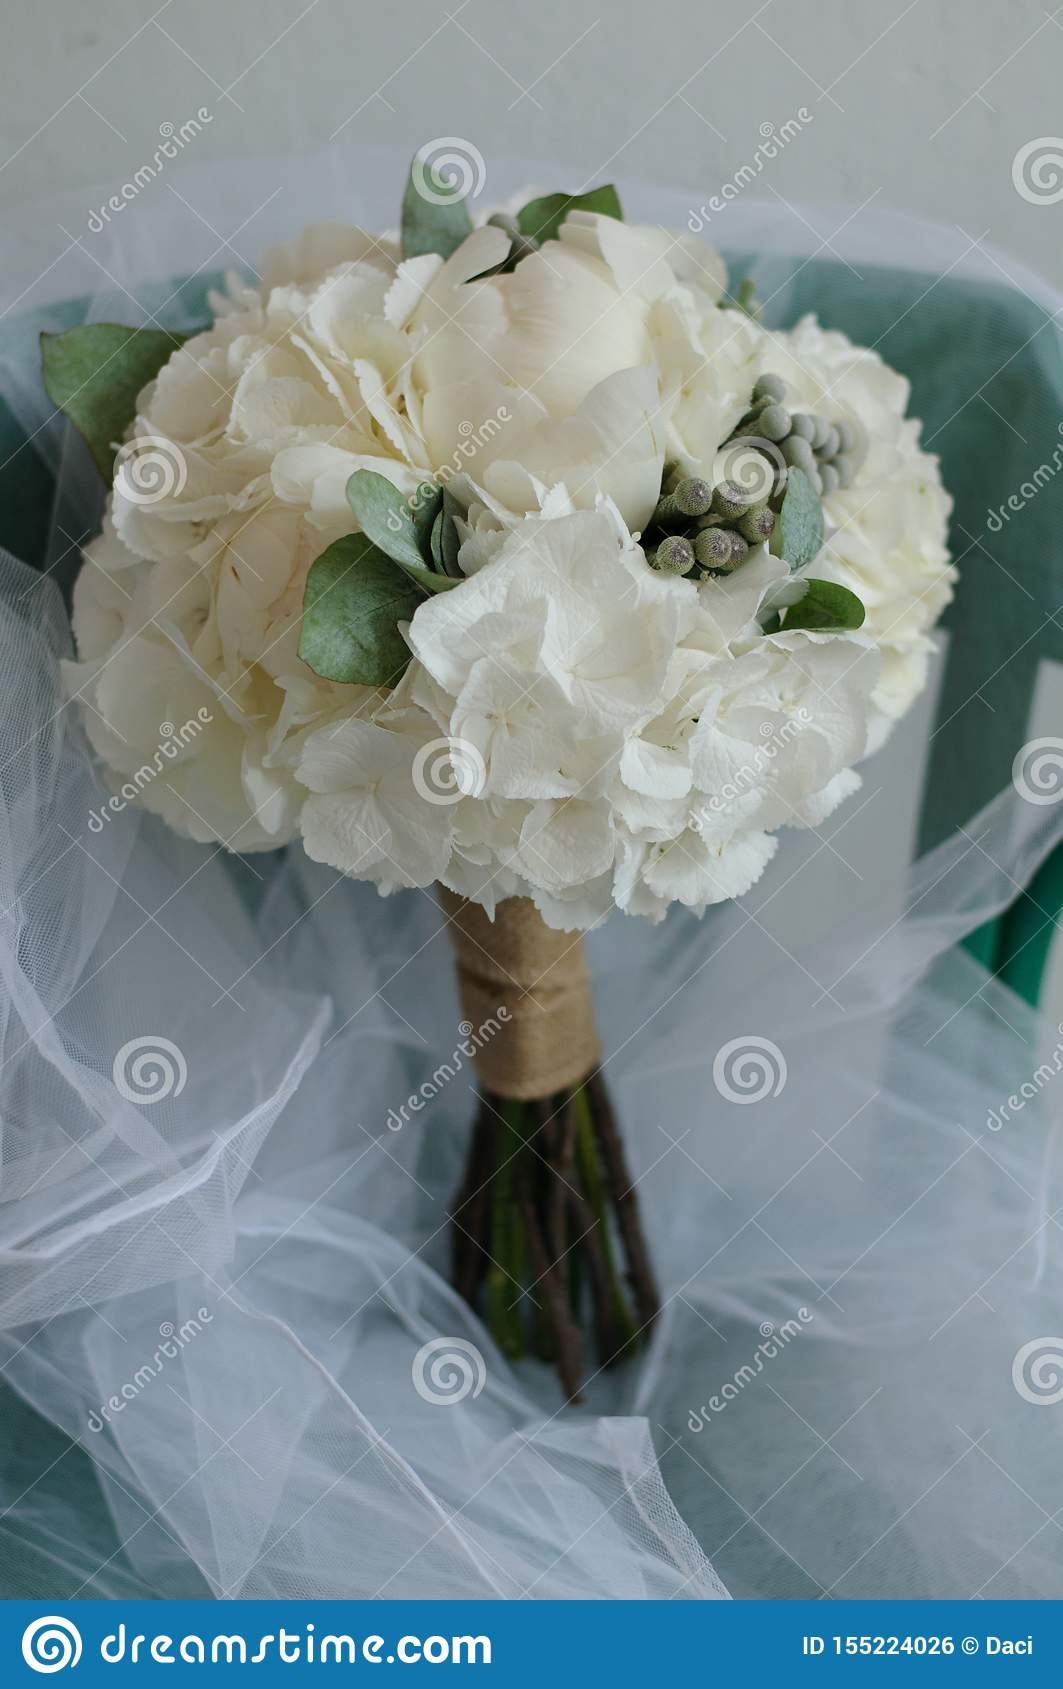 White Wedding Flower Bouquet Of White Hydrangea And Peonies Stock Photo Image Of Color Green 155224026